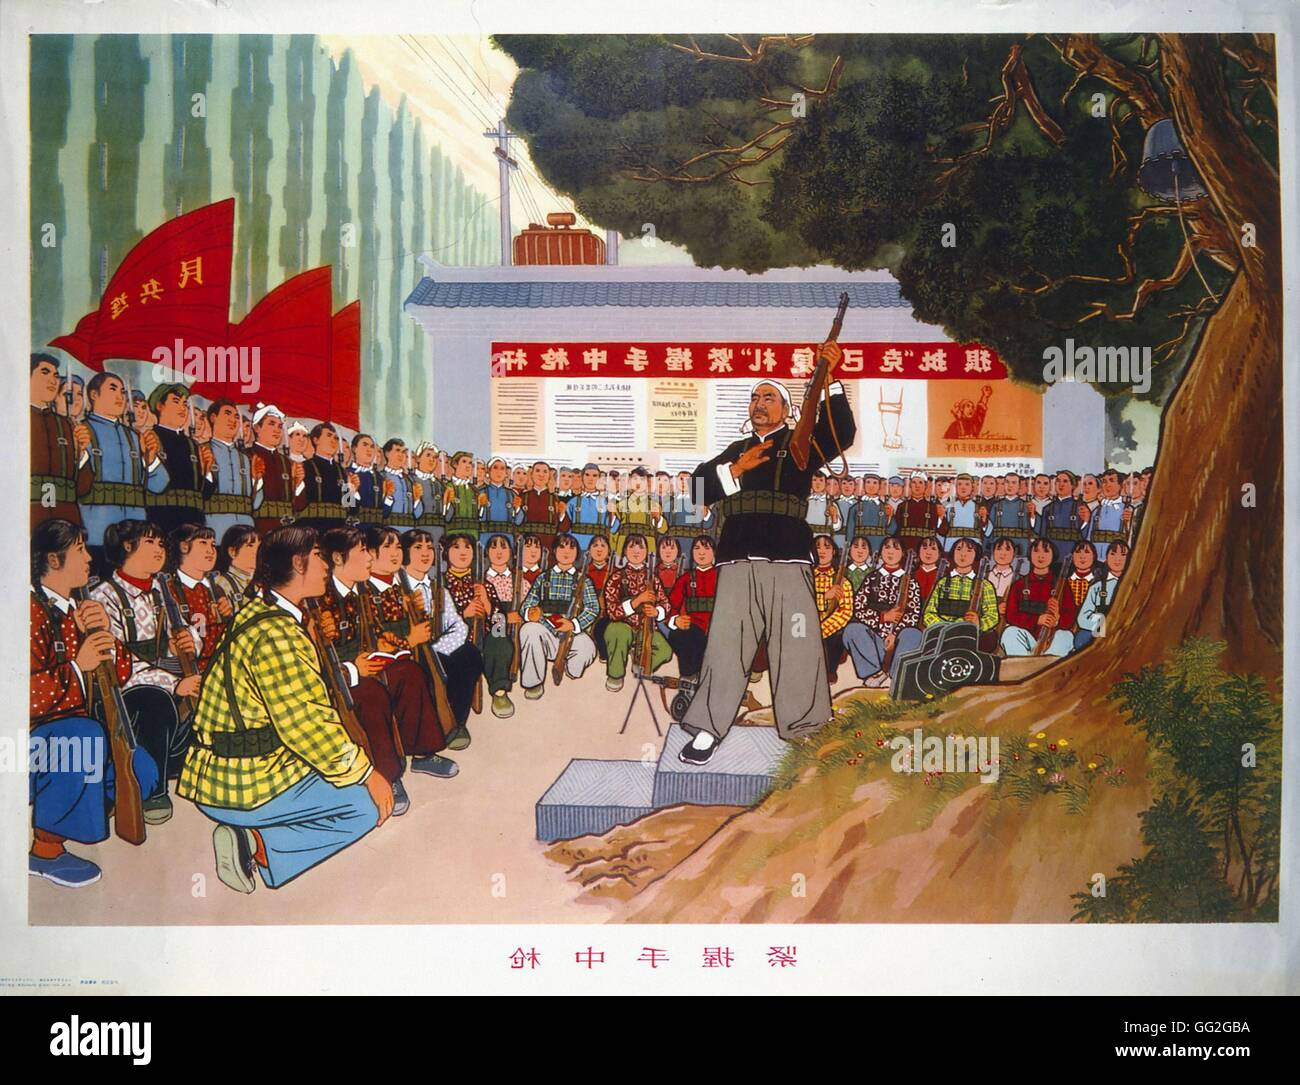 Military instruction lesson. Propaganda image. Chinese Cultural Revolution. 1966-1976 - Stock Image